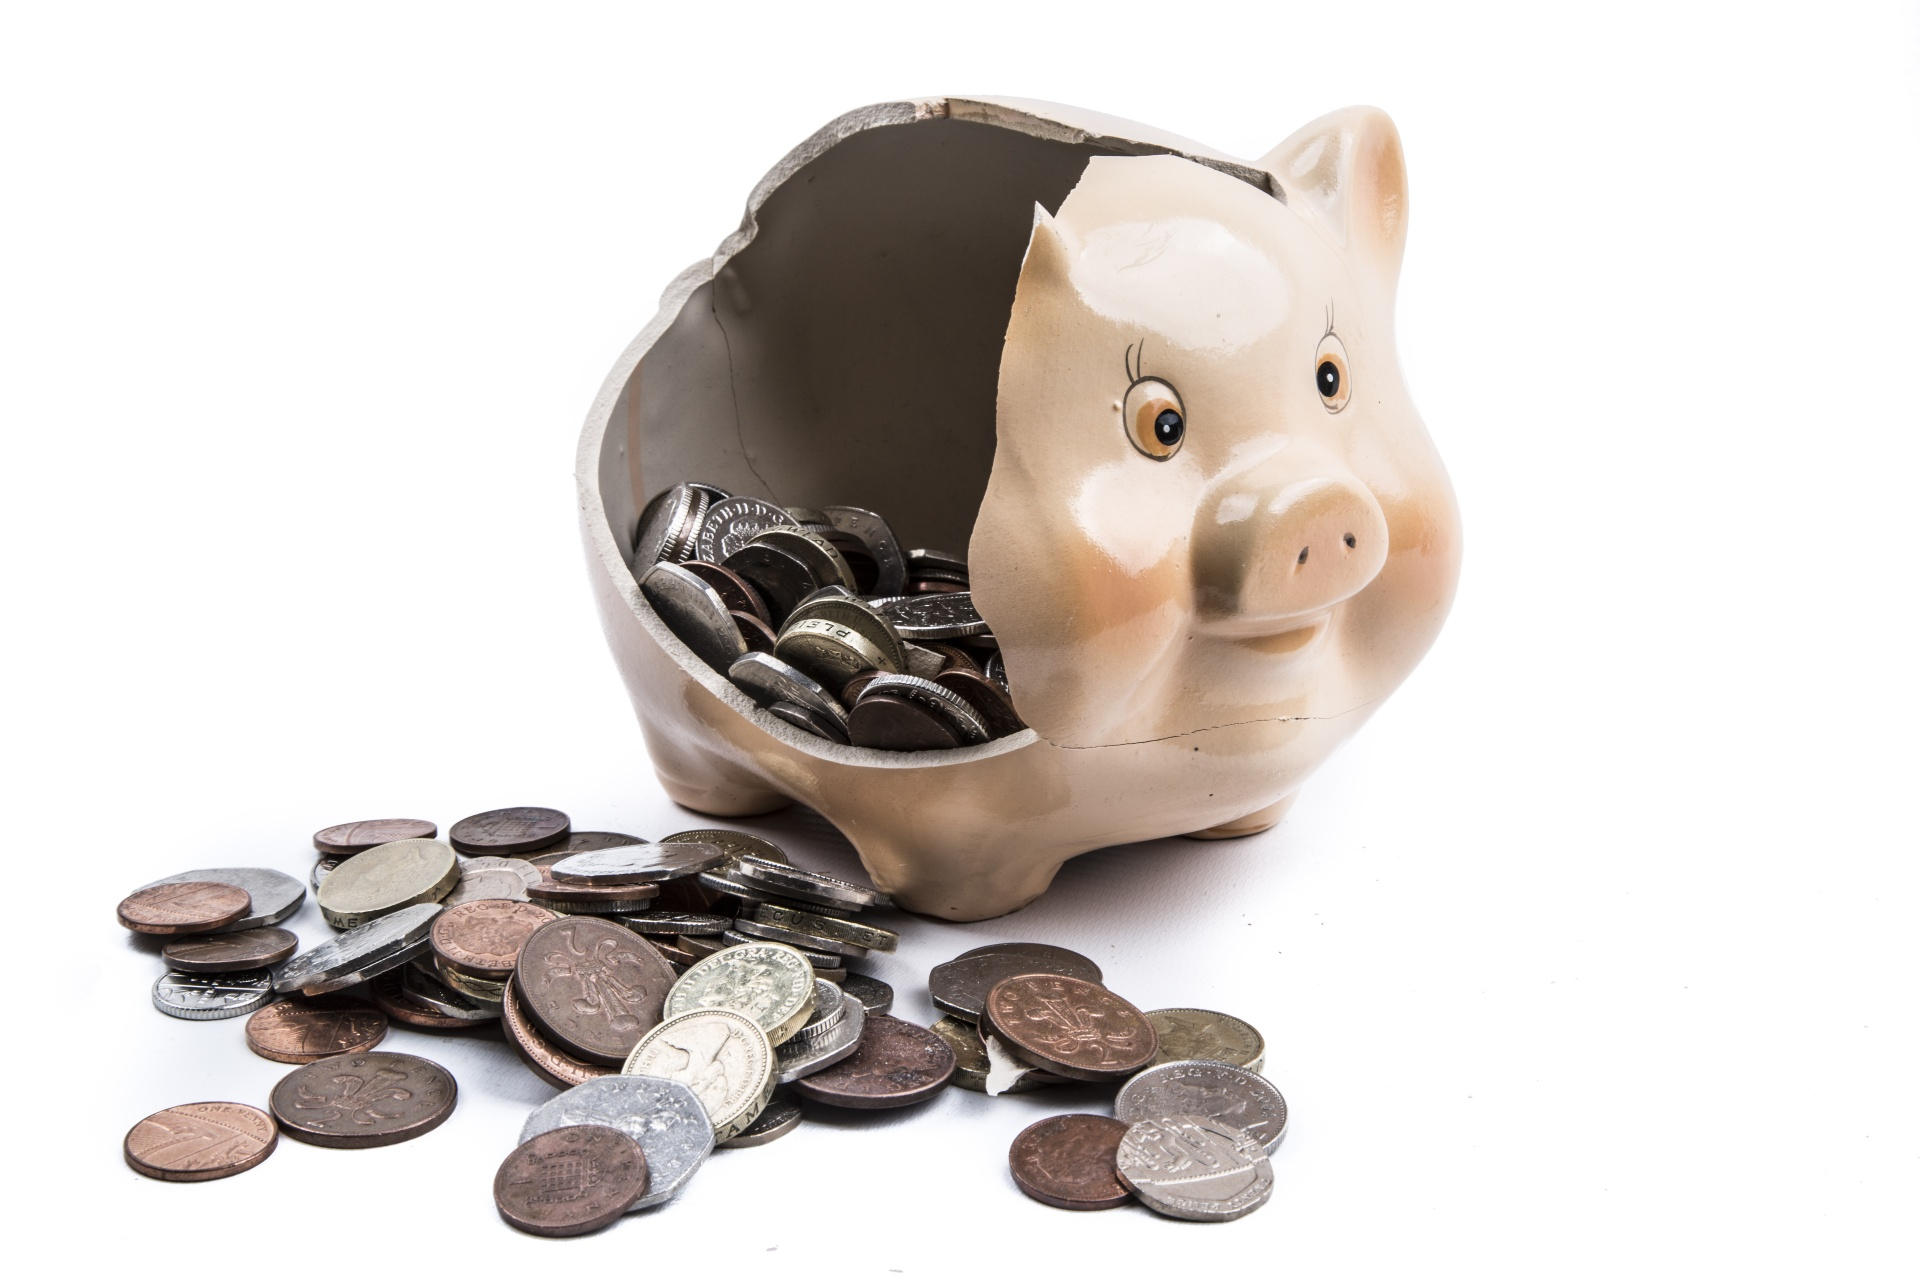 money-in-broken-piggy-bank